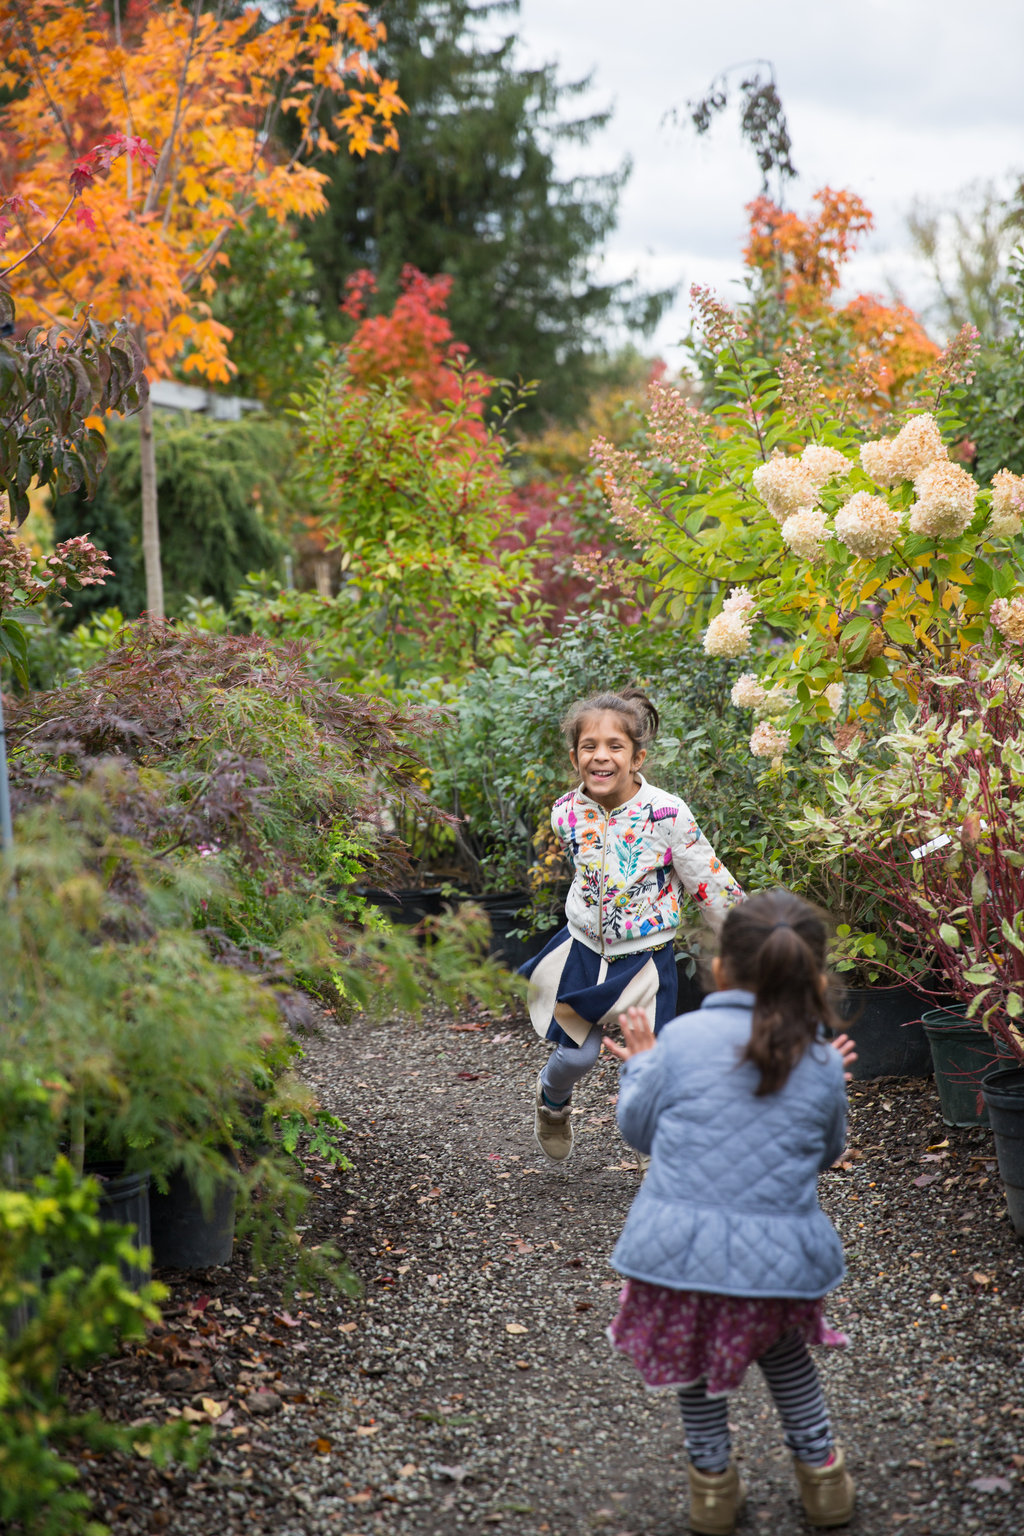 Leaf peeping and Favorite Fall Activities